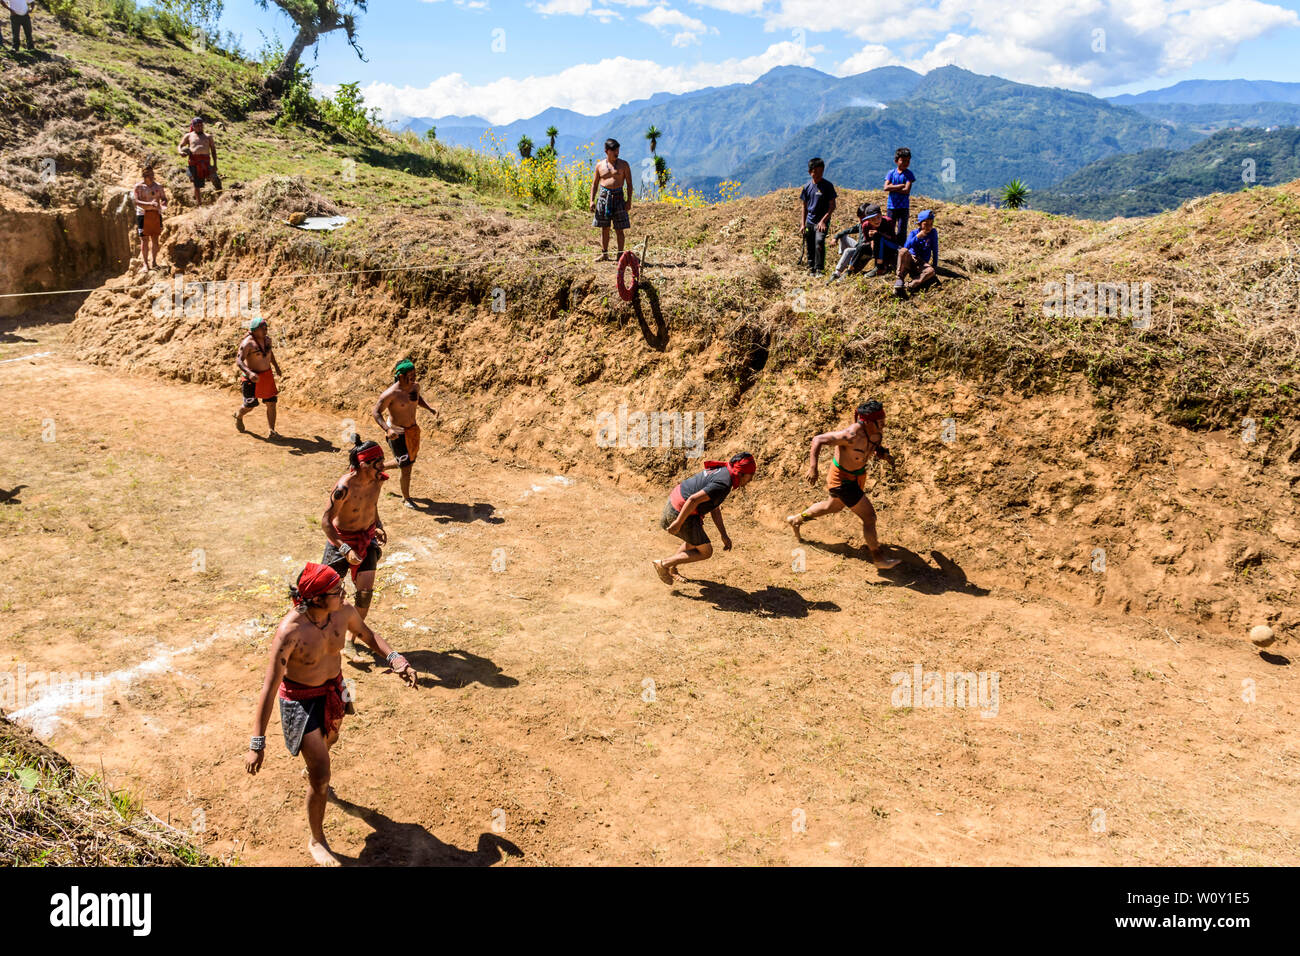 San Andres Semetabaj, Lake Atitlan, Guatemala - November 10, 2018:  Local indigenous Maya men play Maya ballgame in a newly dug ballgame court. - Stock Image